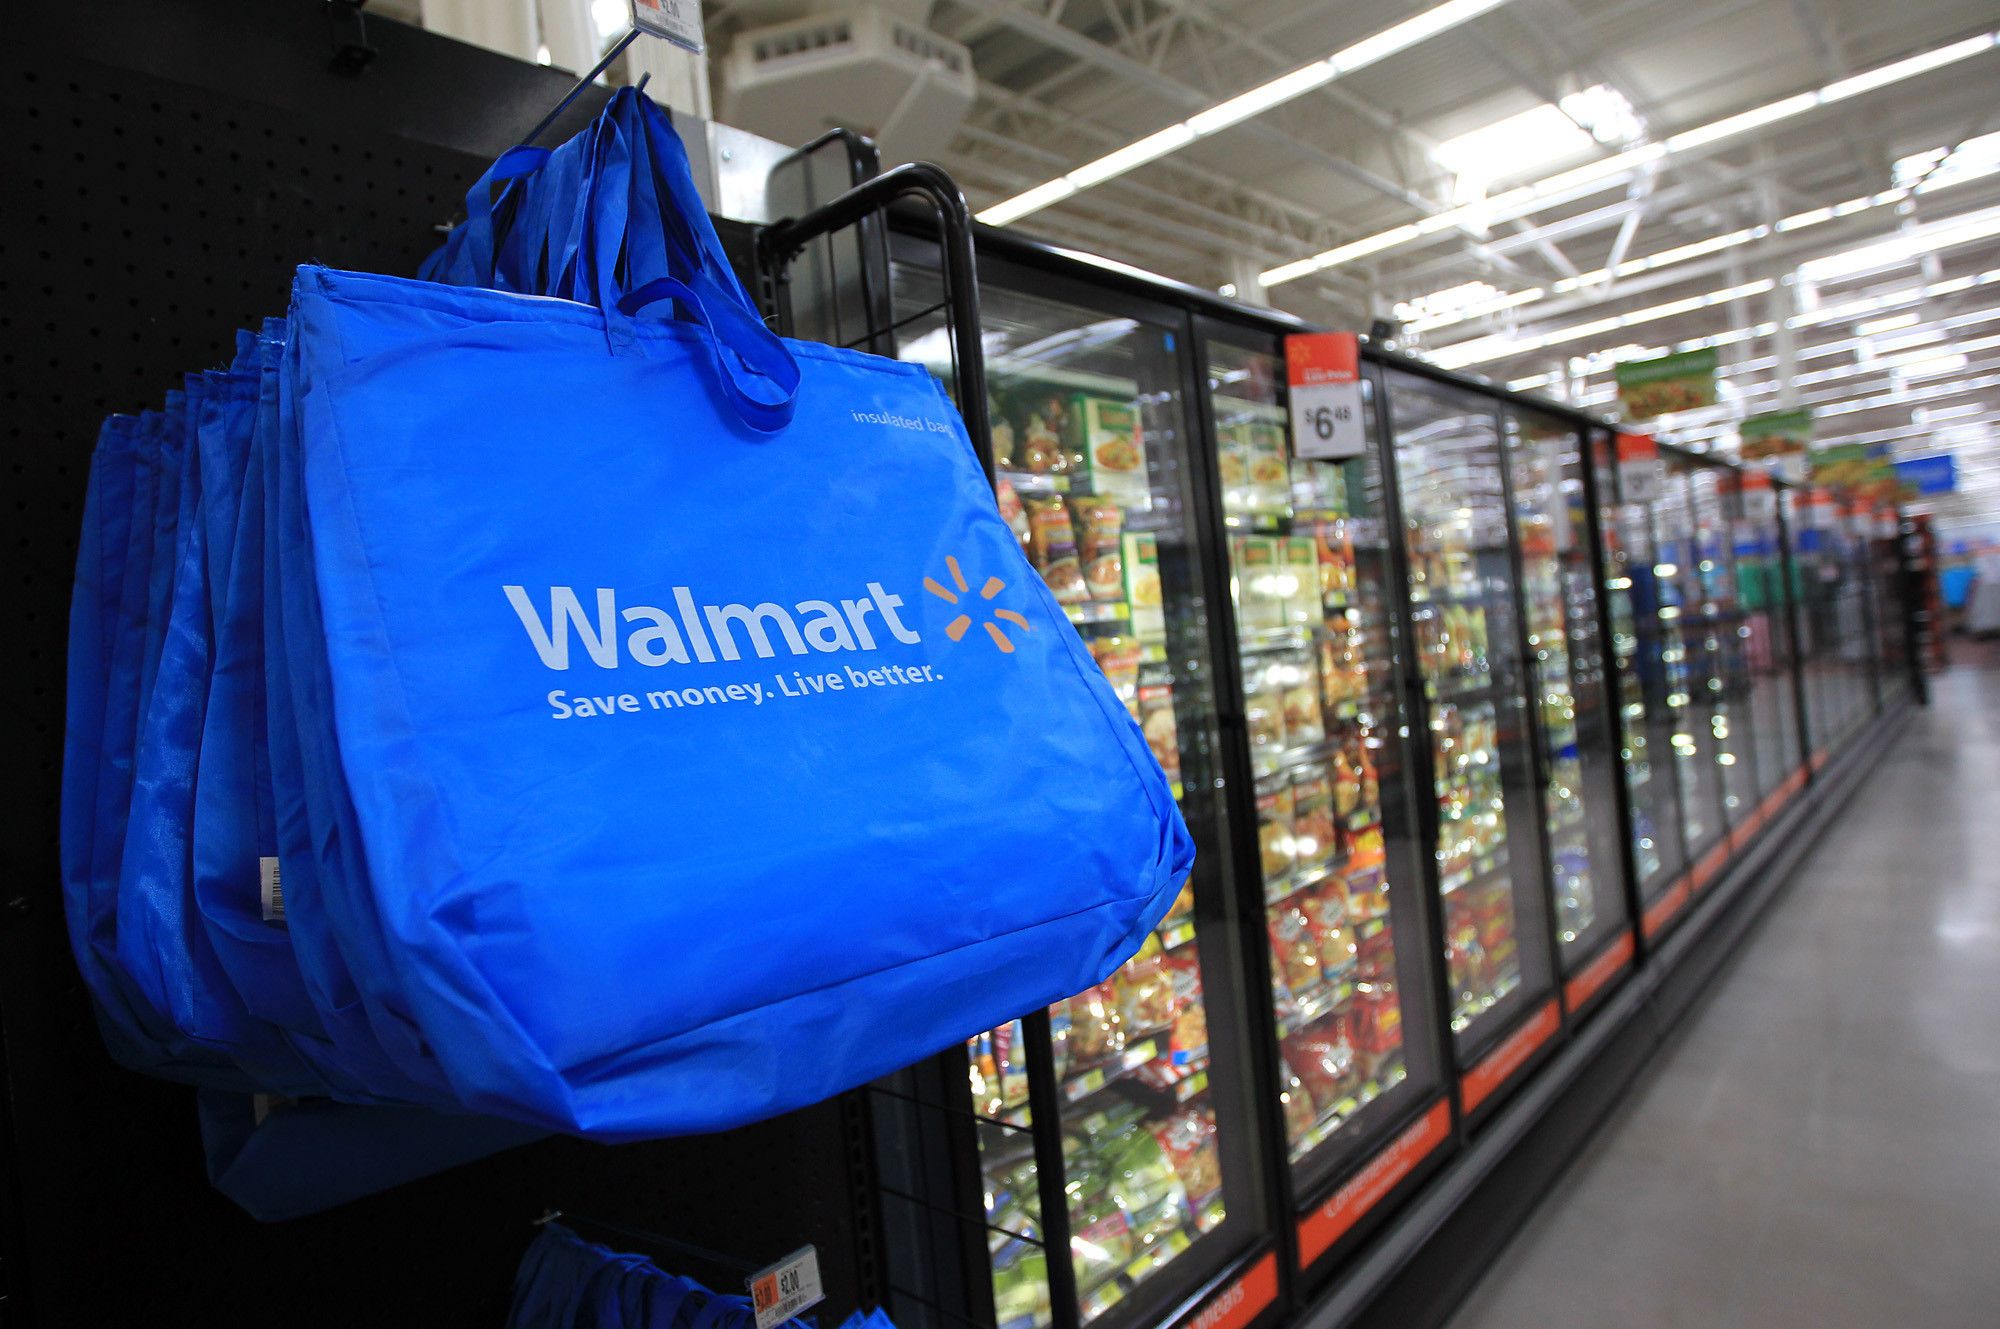 wal mart stores in 2003 Wal-mart stores in 2003 (abridged version) case solution, examines wal-mart's development over three decades and provides financial and descriptive detail of its domestic operations.